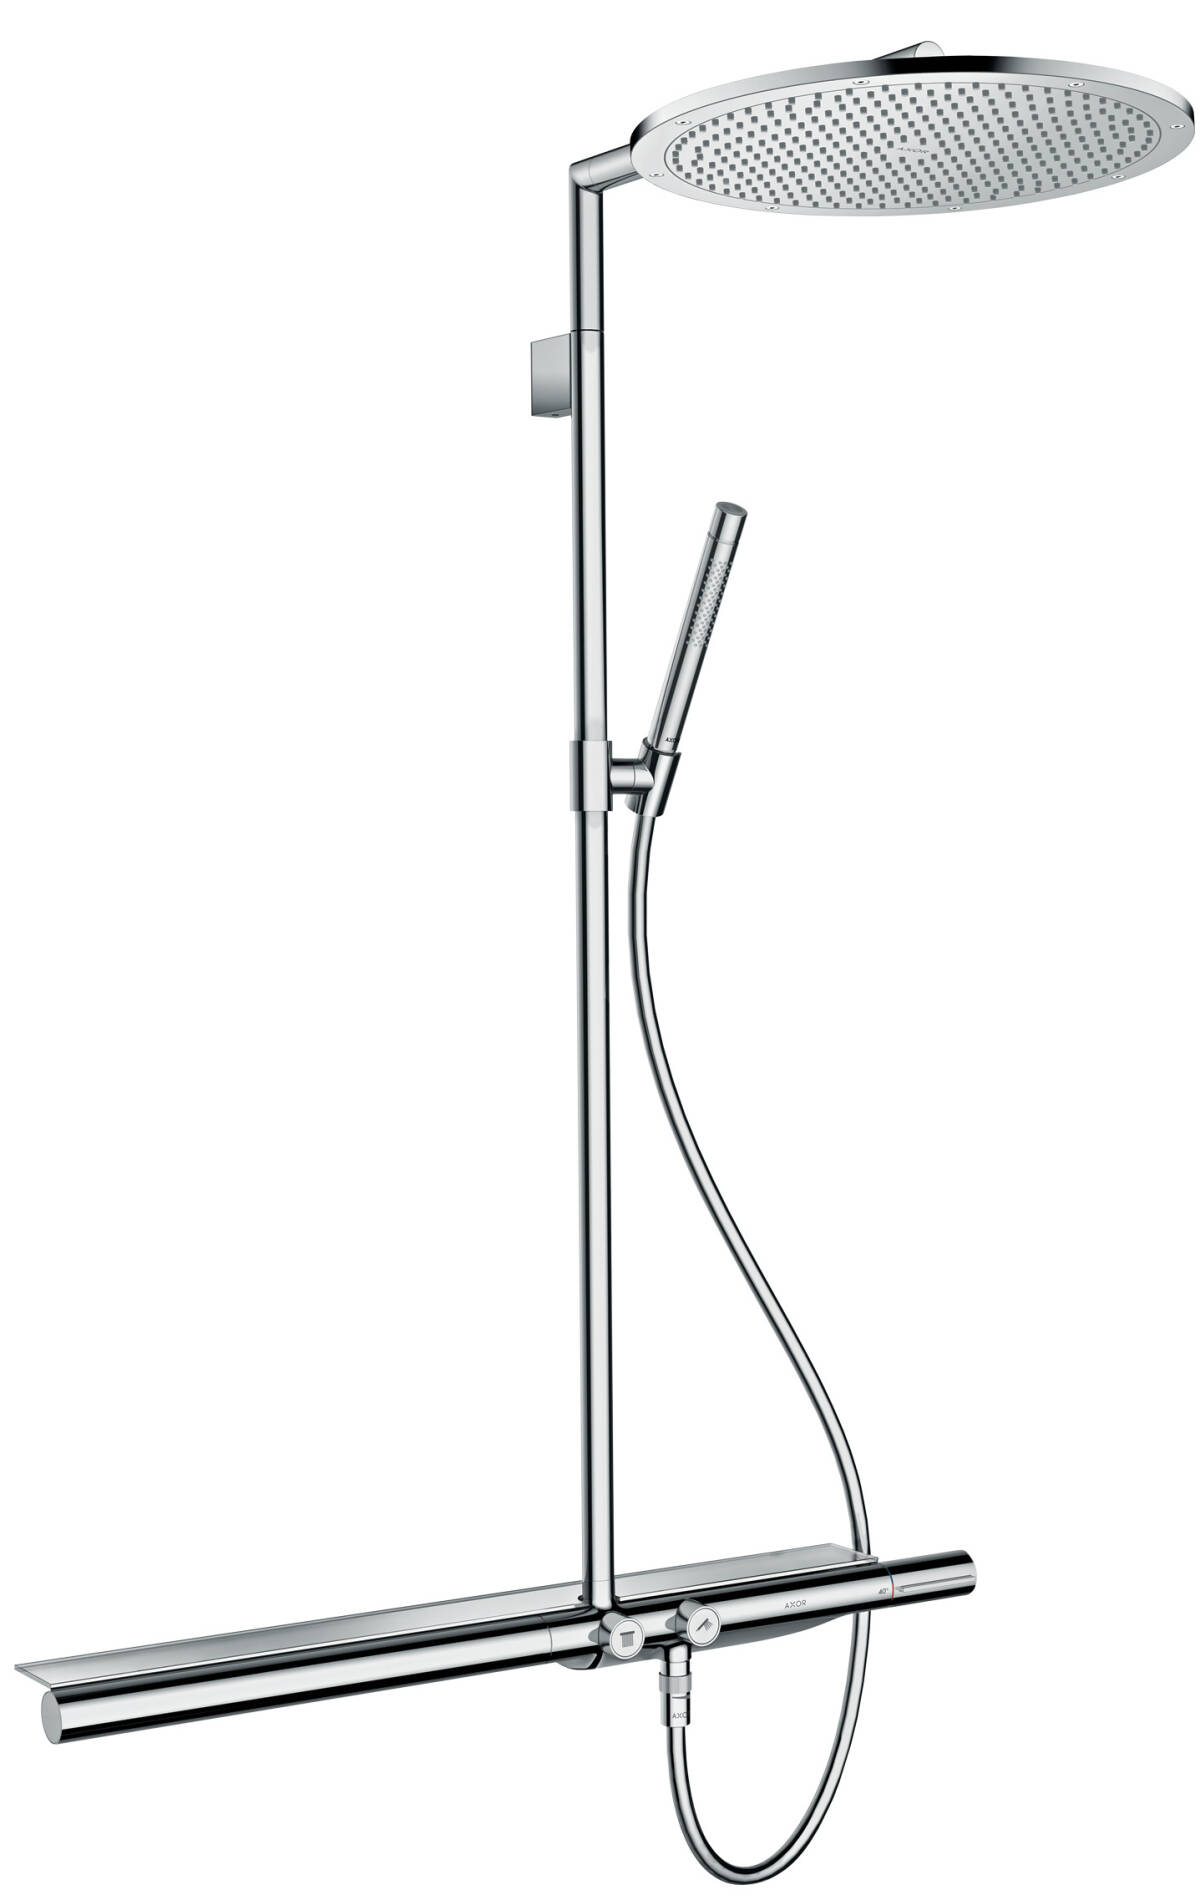 Showerpipe with thermostat 800 and overhead shower 350 1jet, Brushed Gold Optic, 27984250